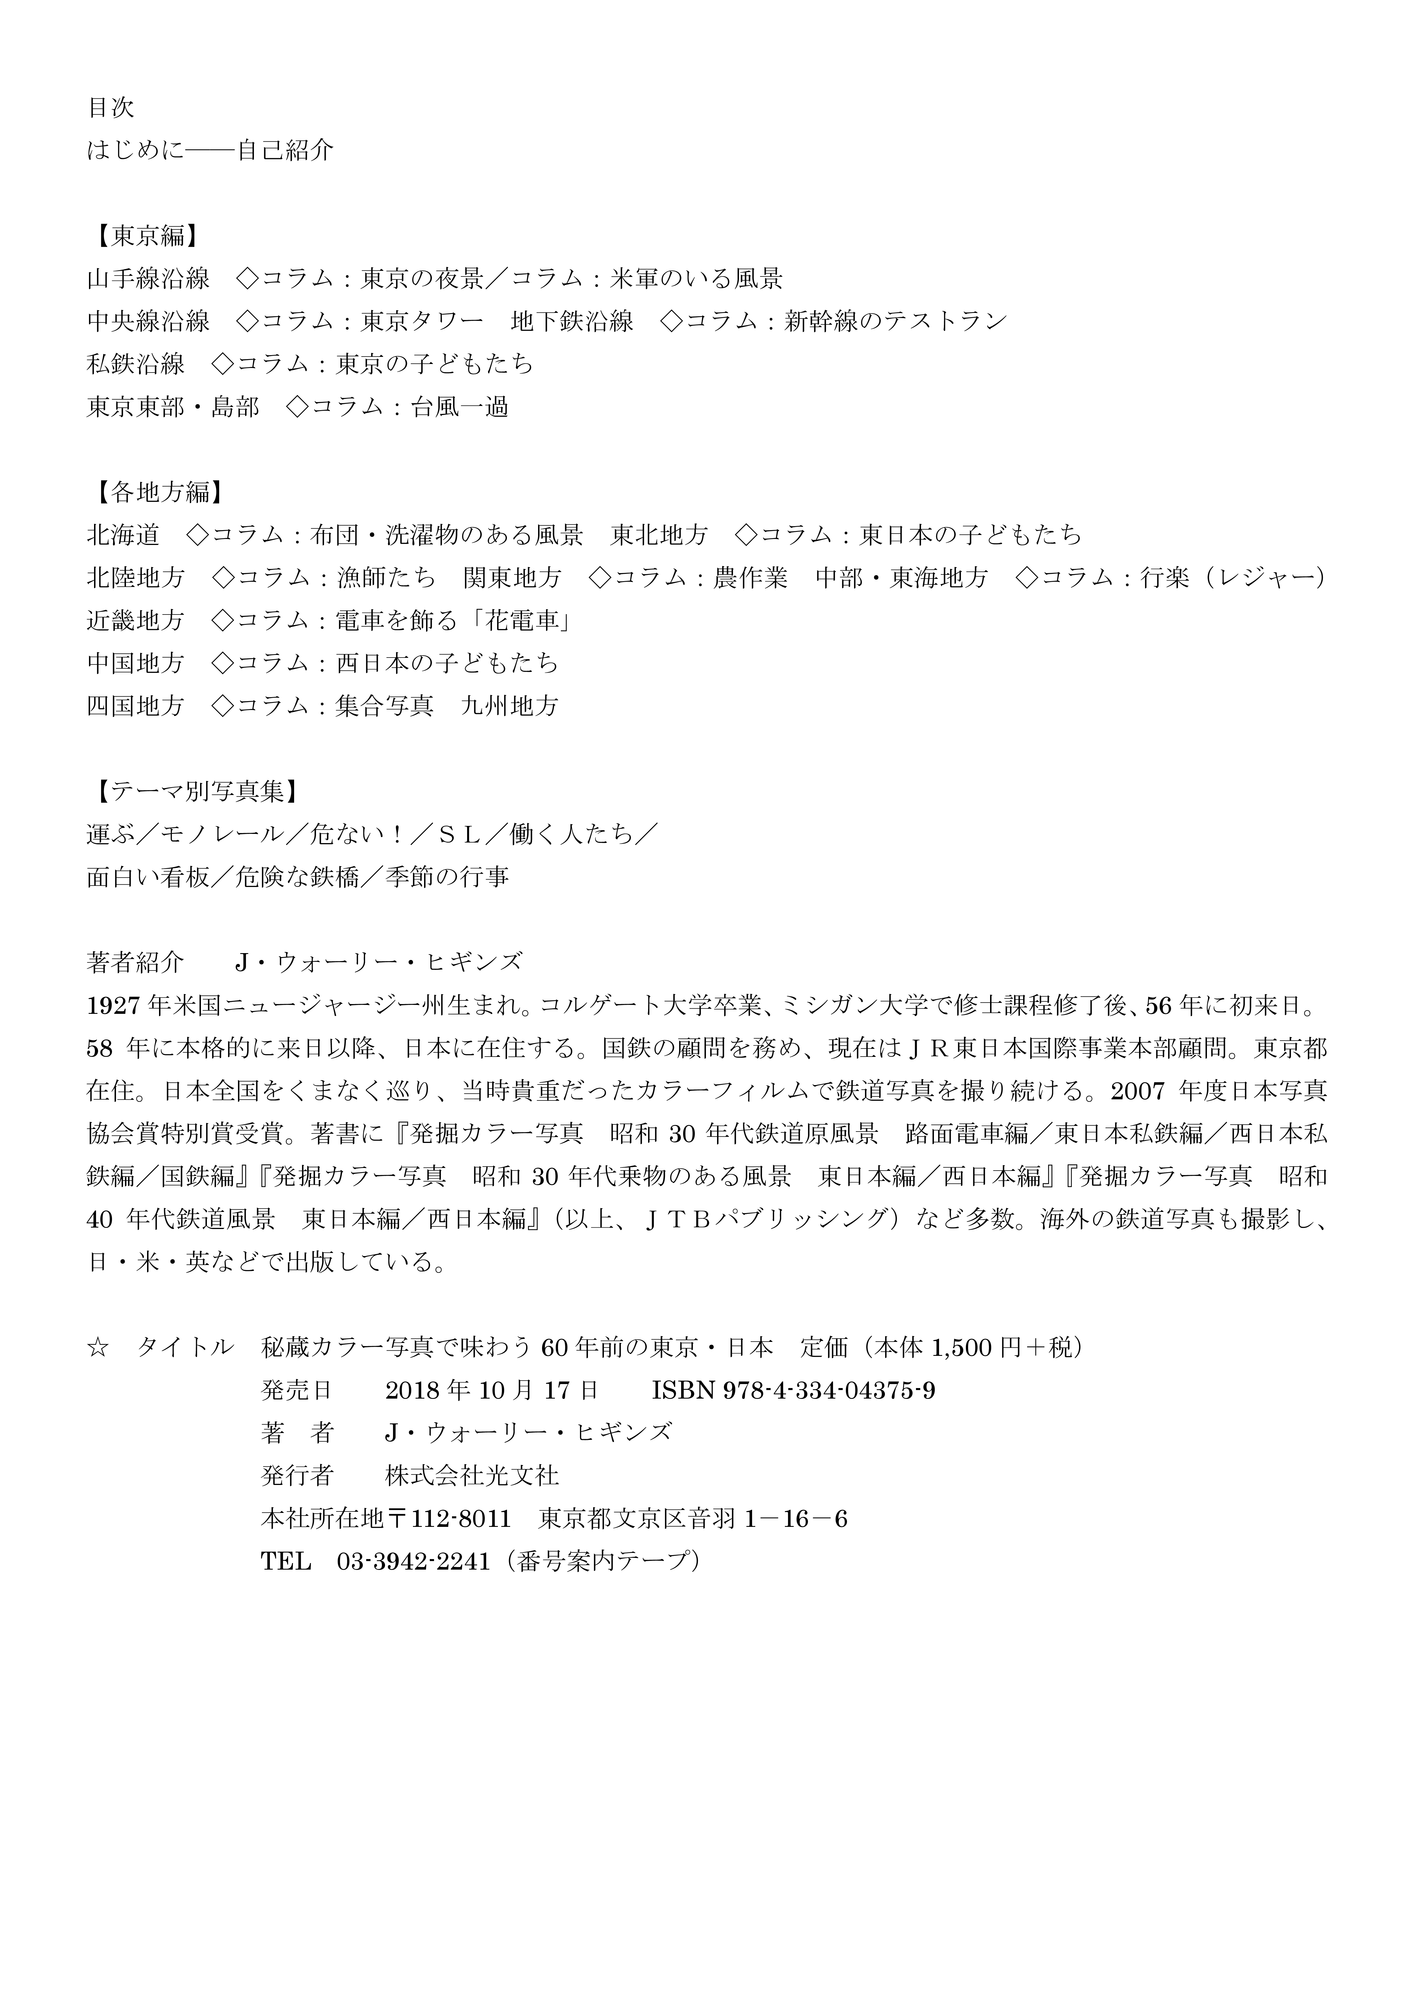 Microsoft Word - 文書 1.png